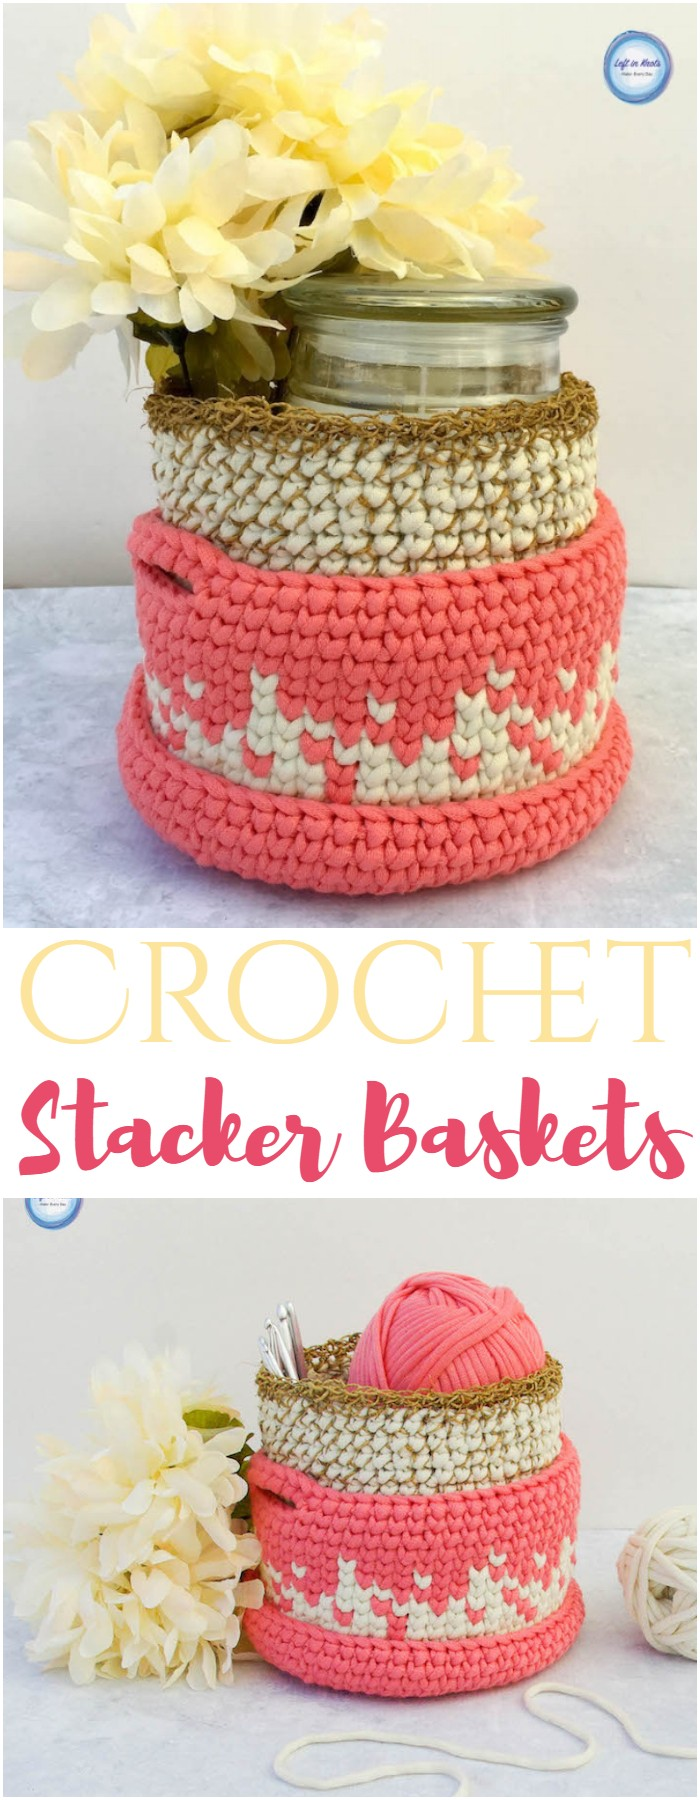 Crochet Stacker Baskets